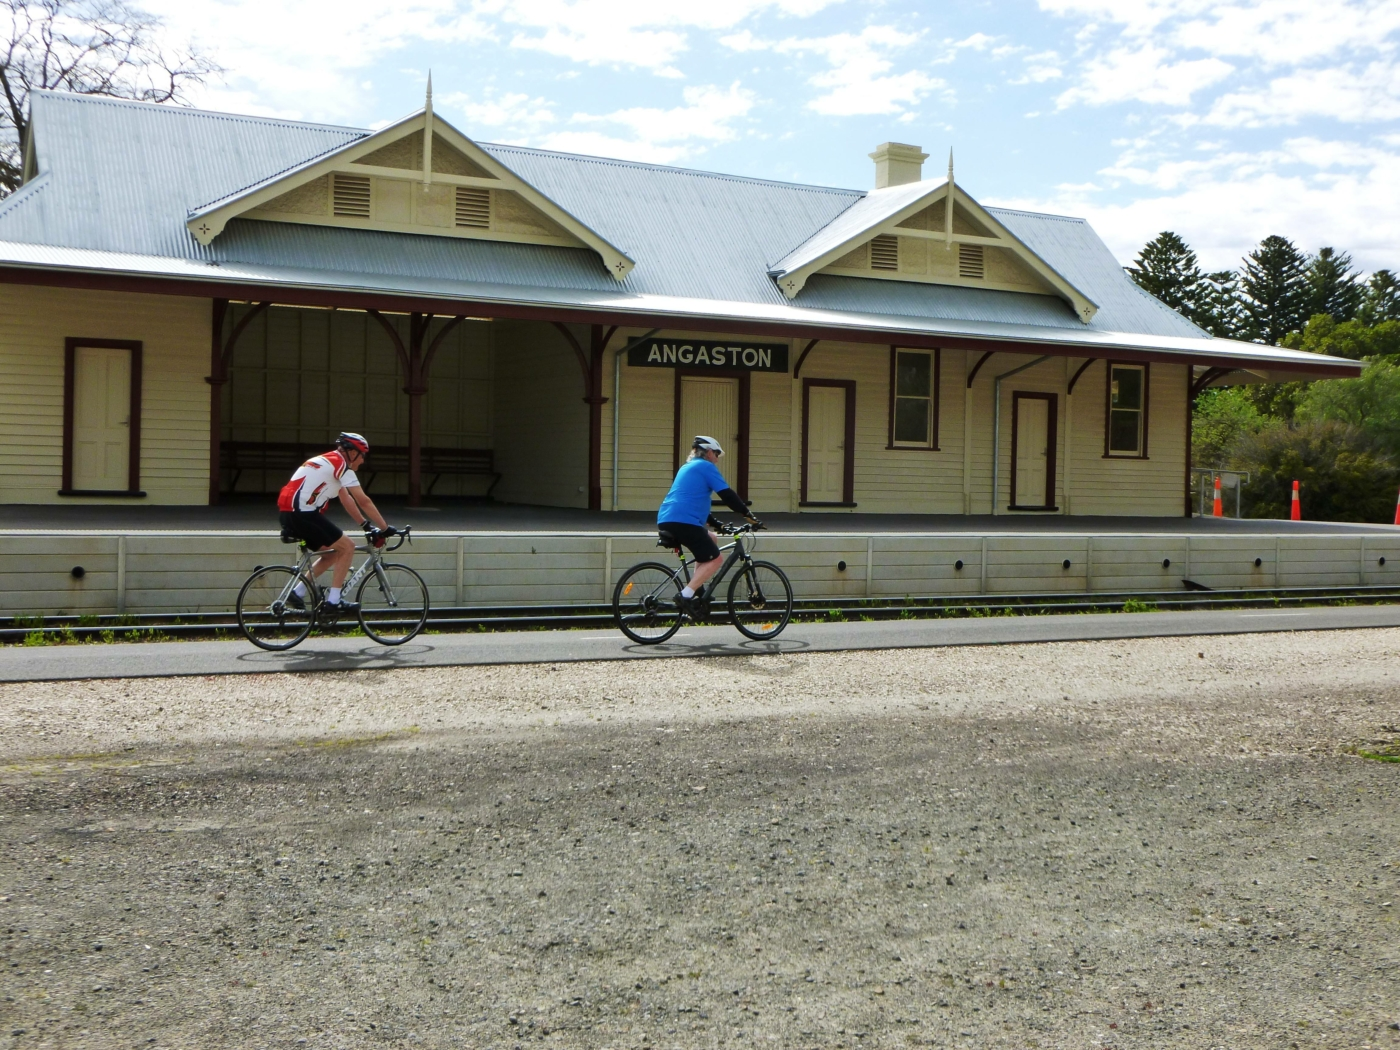 The Angaston station building has also been restored (2020)